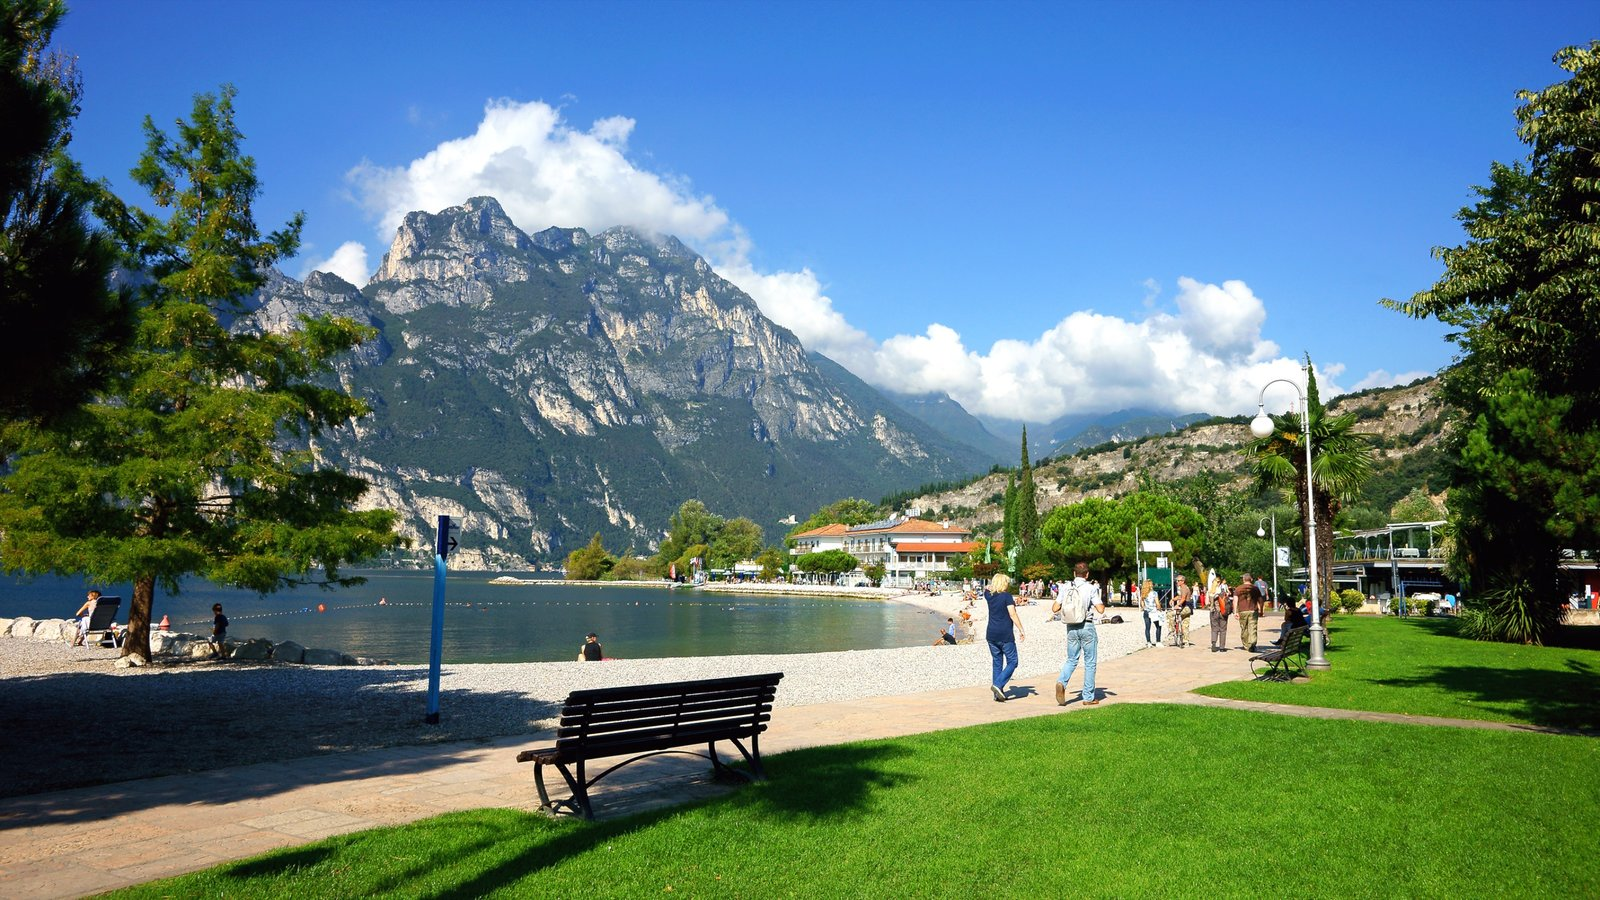 Riva del Garda featuring a park, mountains and a lake or waterhole